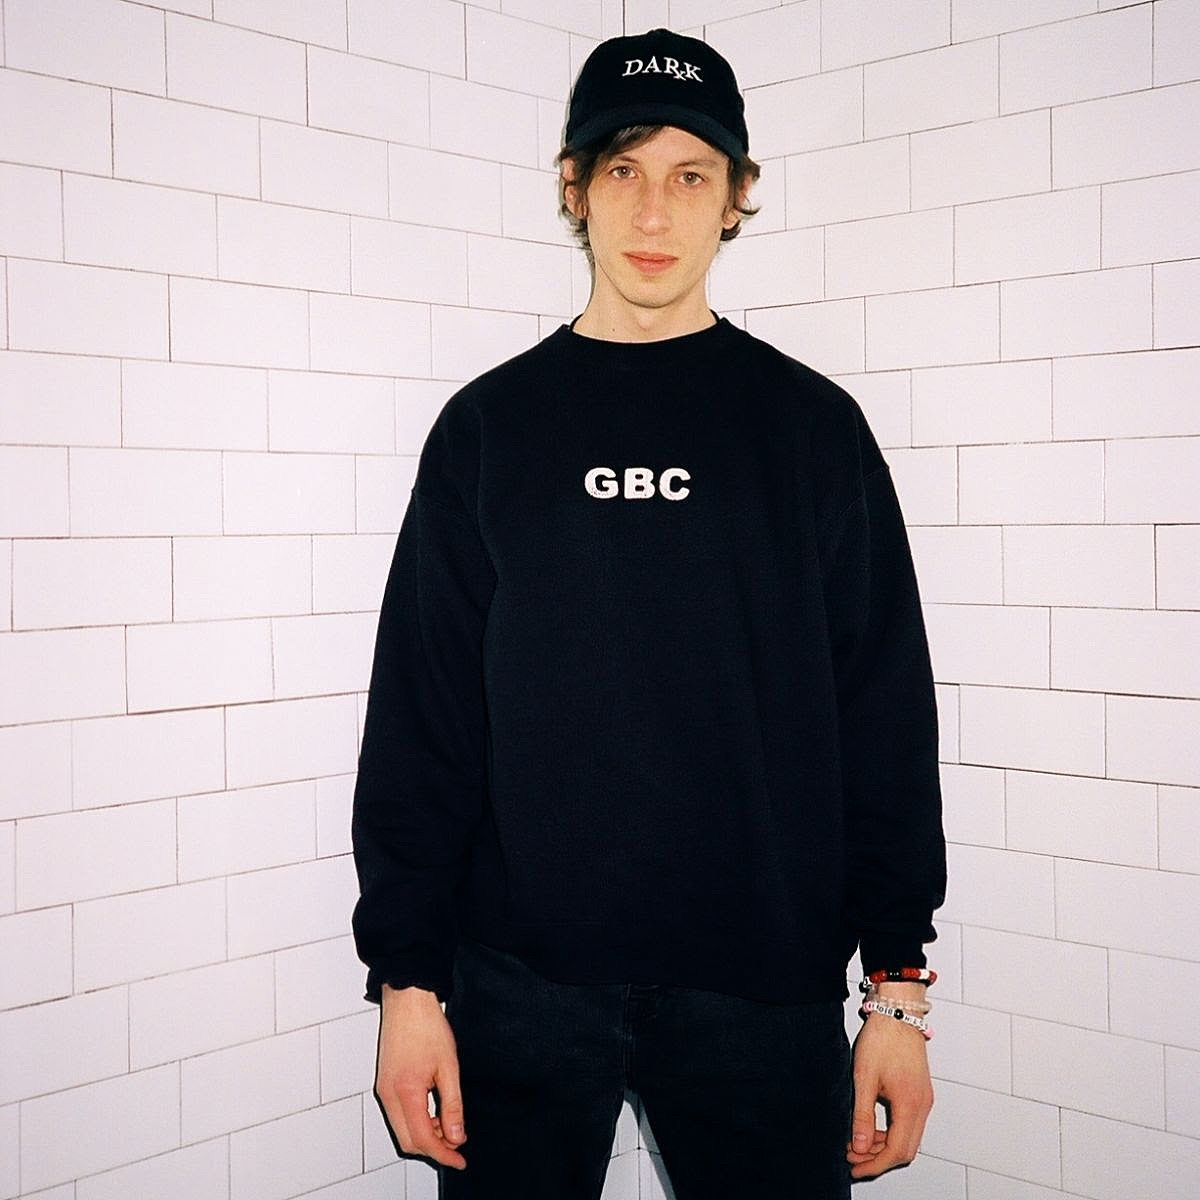 Wicca Phase tells us his top 10 LPs of 2019; tour w/ Glitterer, Creeks, Anxious begins